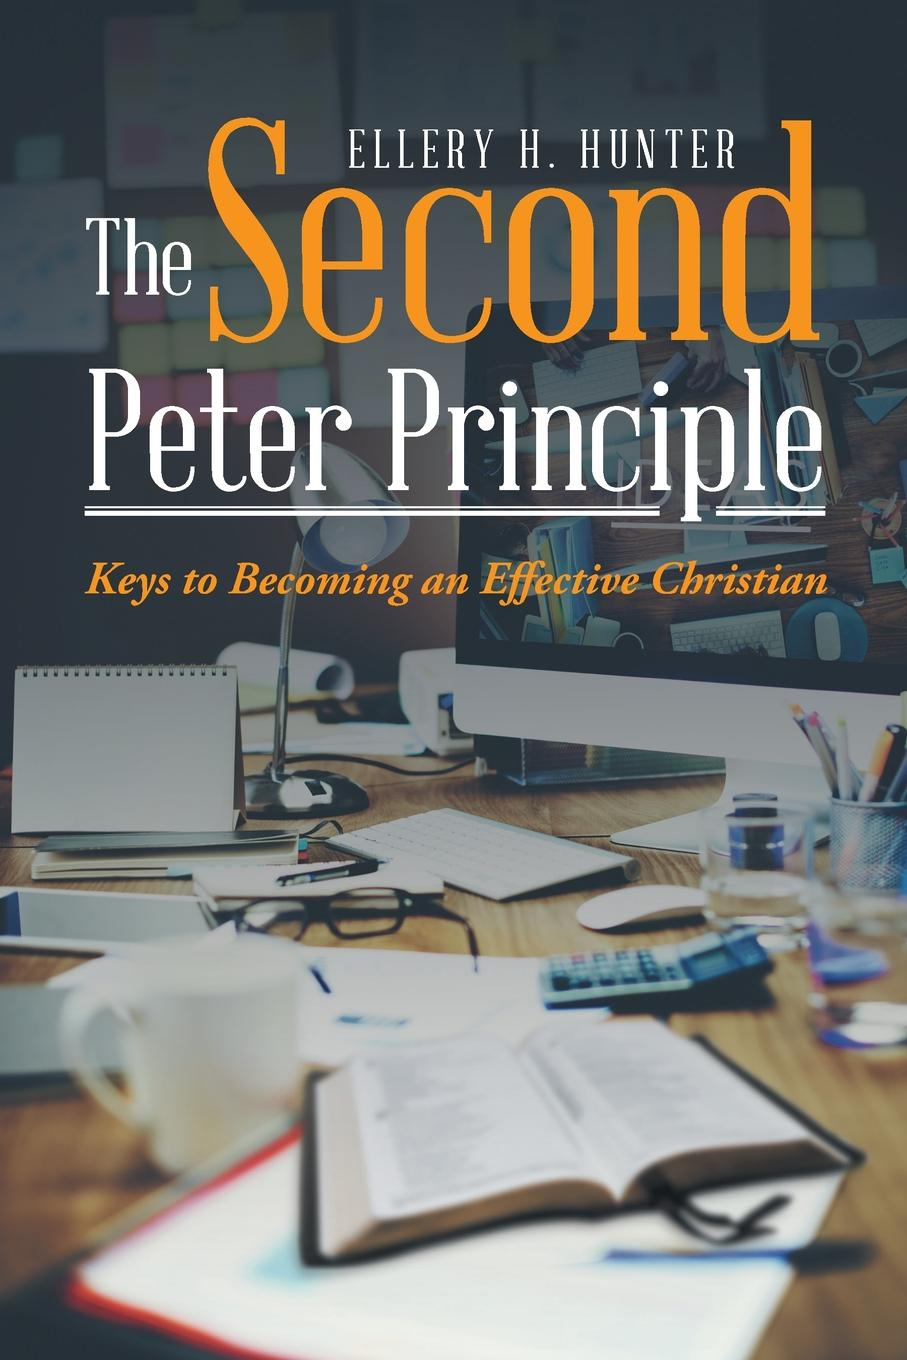 Ellery H. Hunter The Second Peter Principle. Keys to Becoming an Effective Christian levels of life